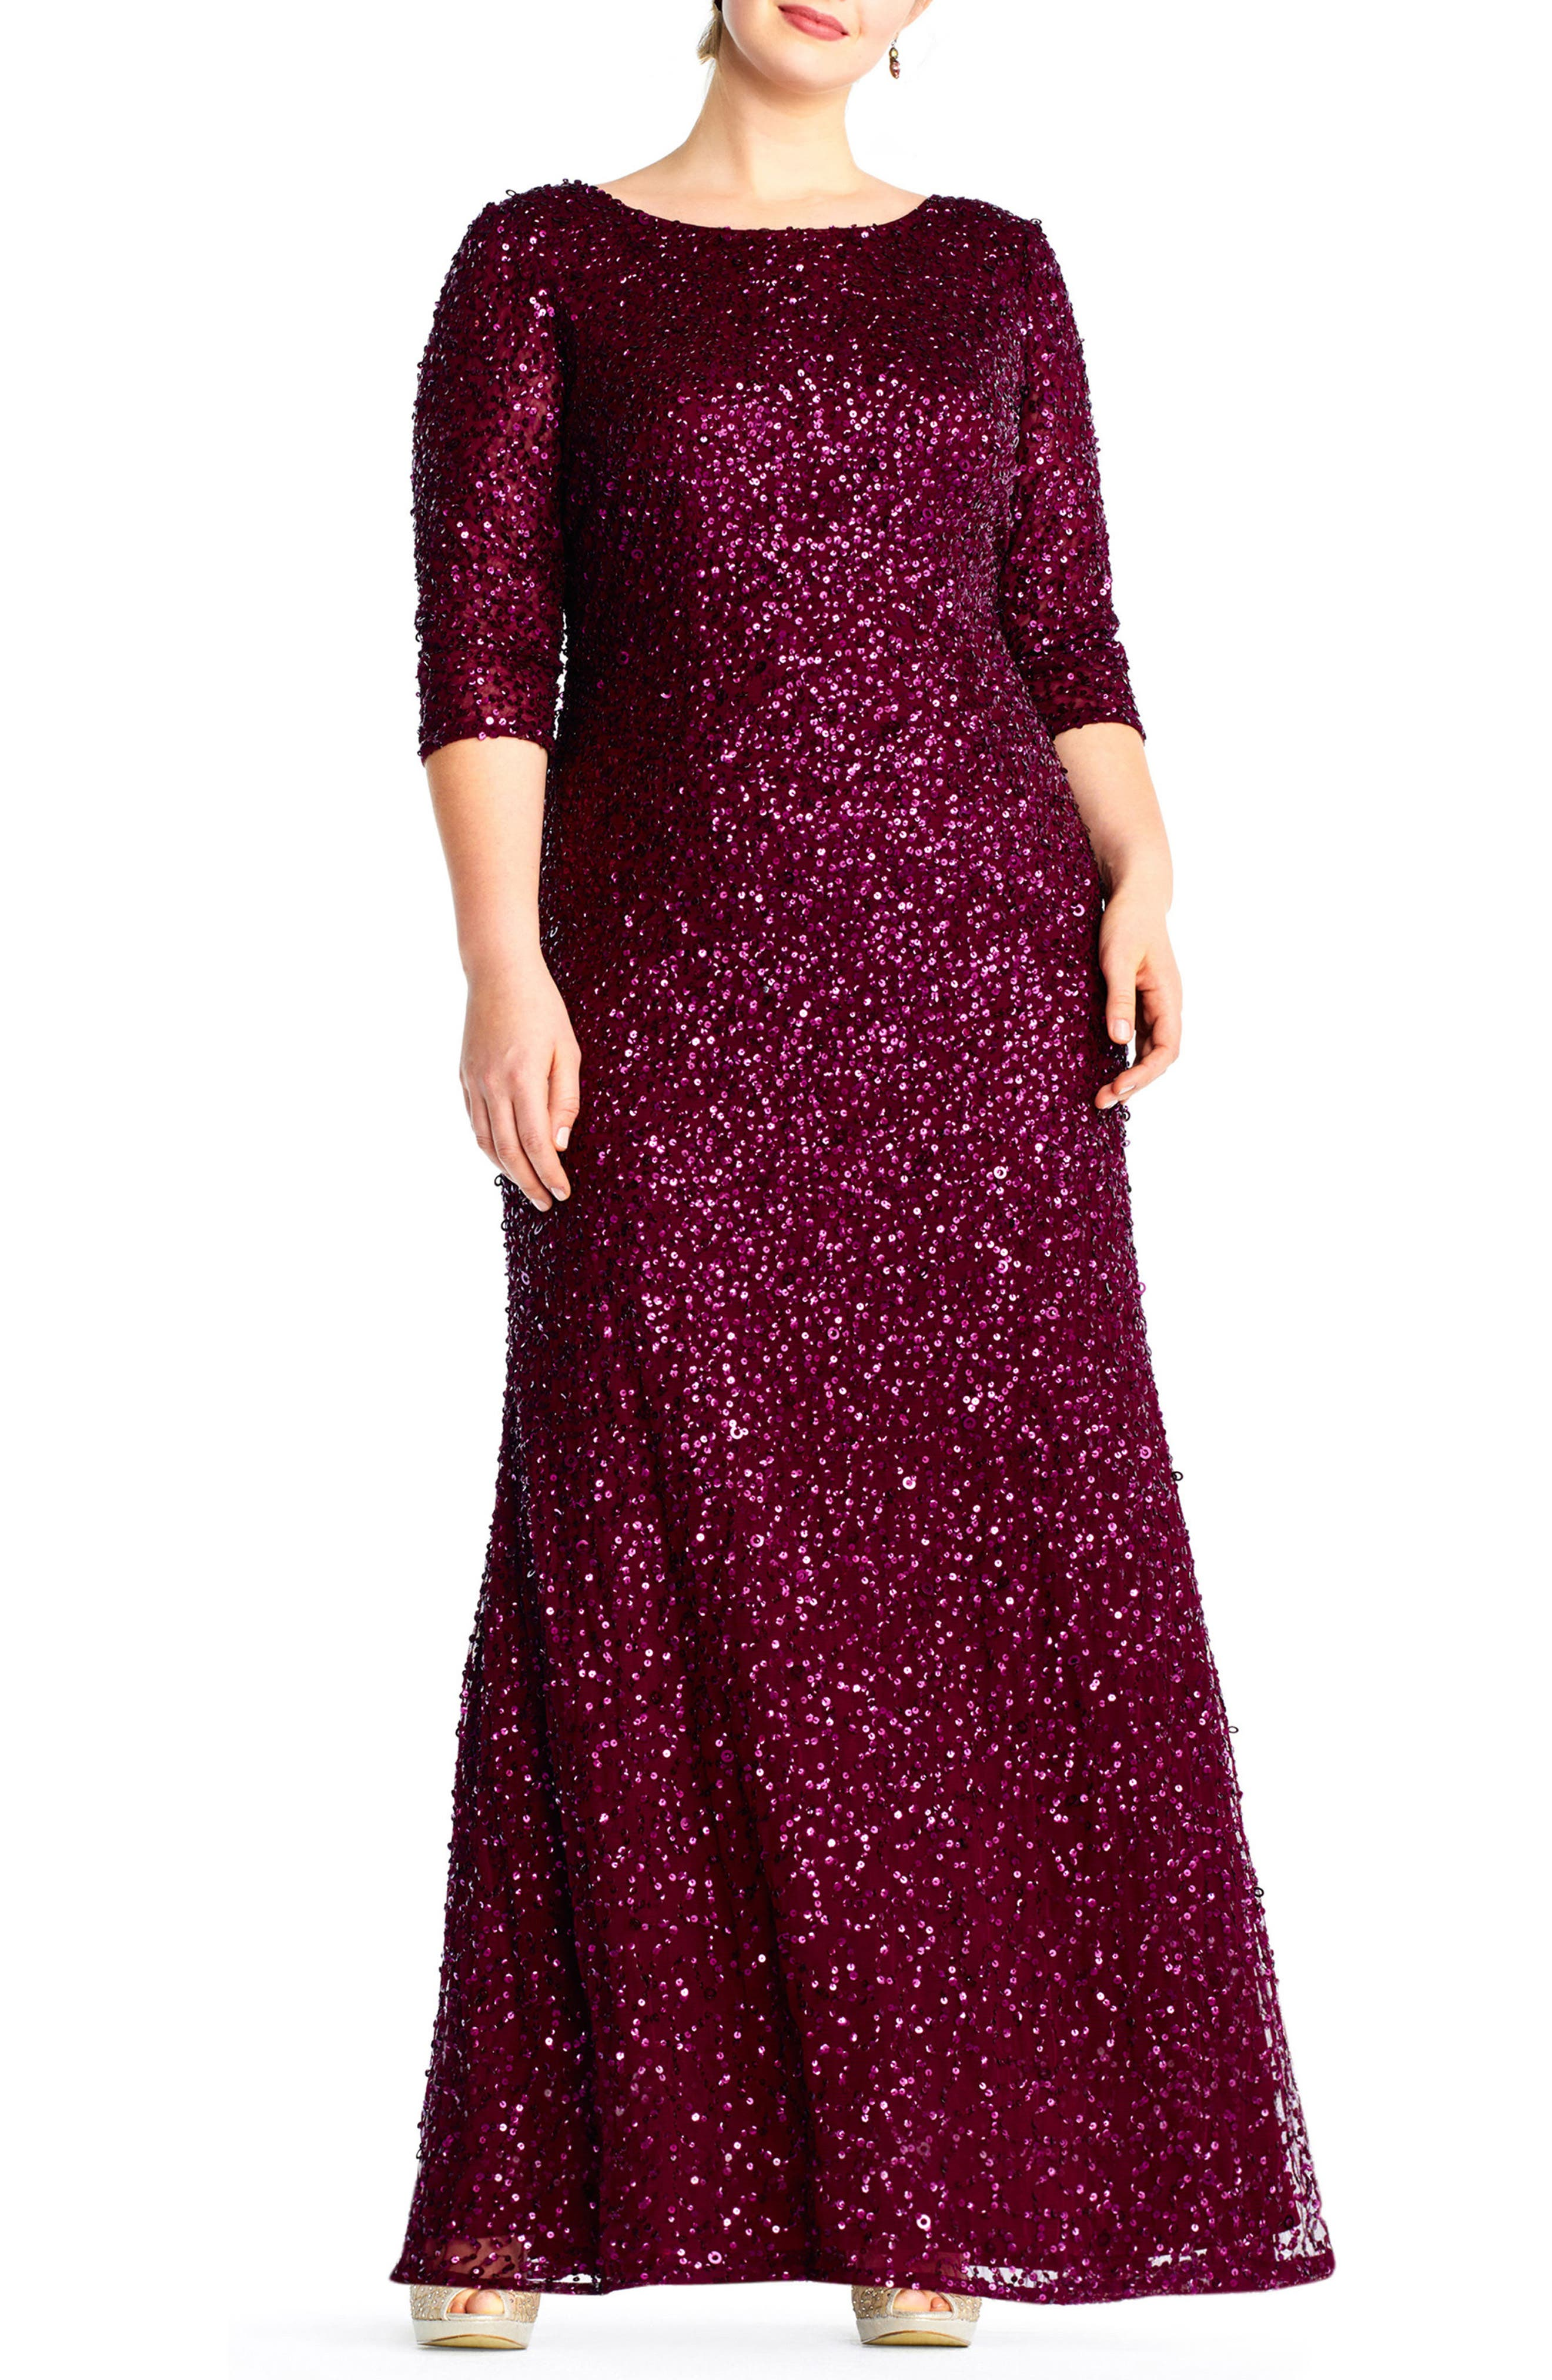 Sequin Adrianna Papell Dresses | Nordstrom